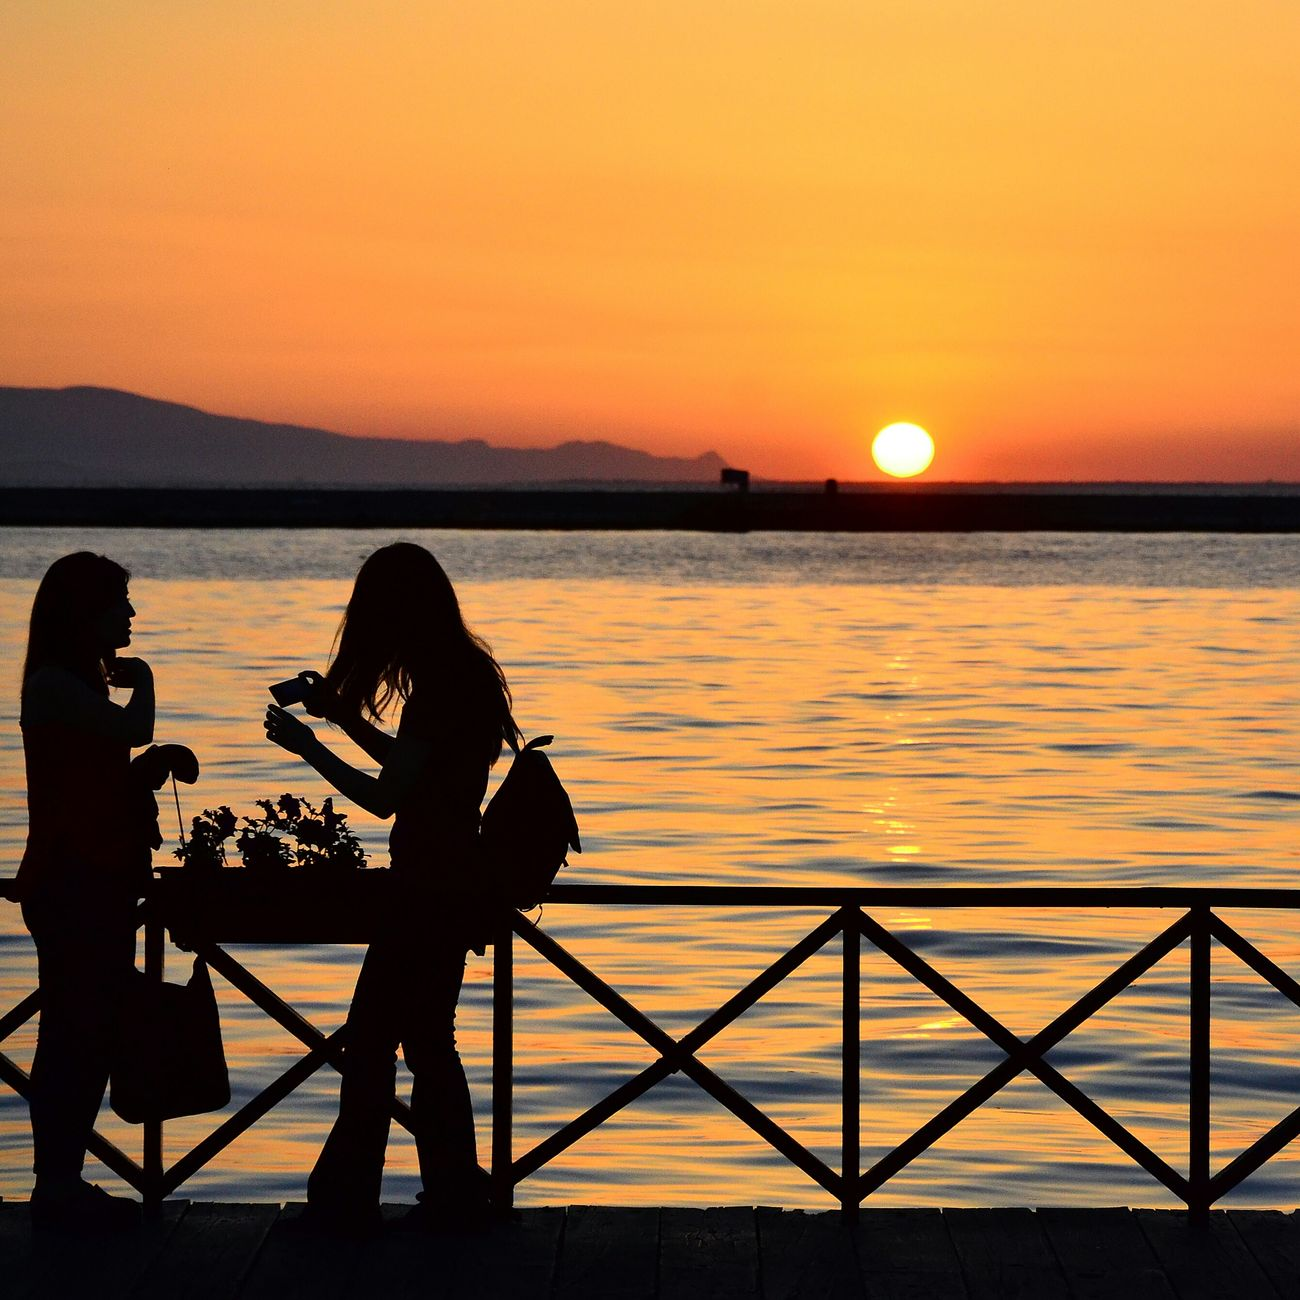 Konak İzmirde Alsancak Kordon Sunset Relaxing Enjoying Life Sunbathing Sunsetlover Sungoesdown Sunset Silhouettes